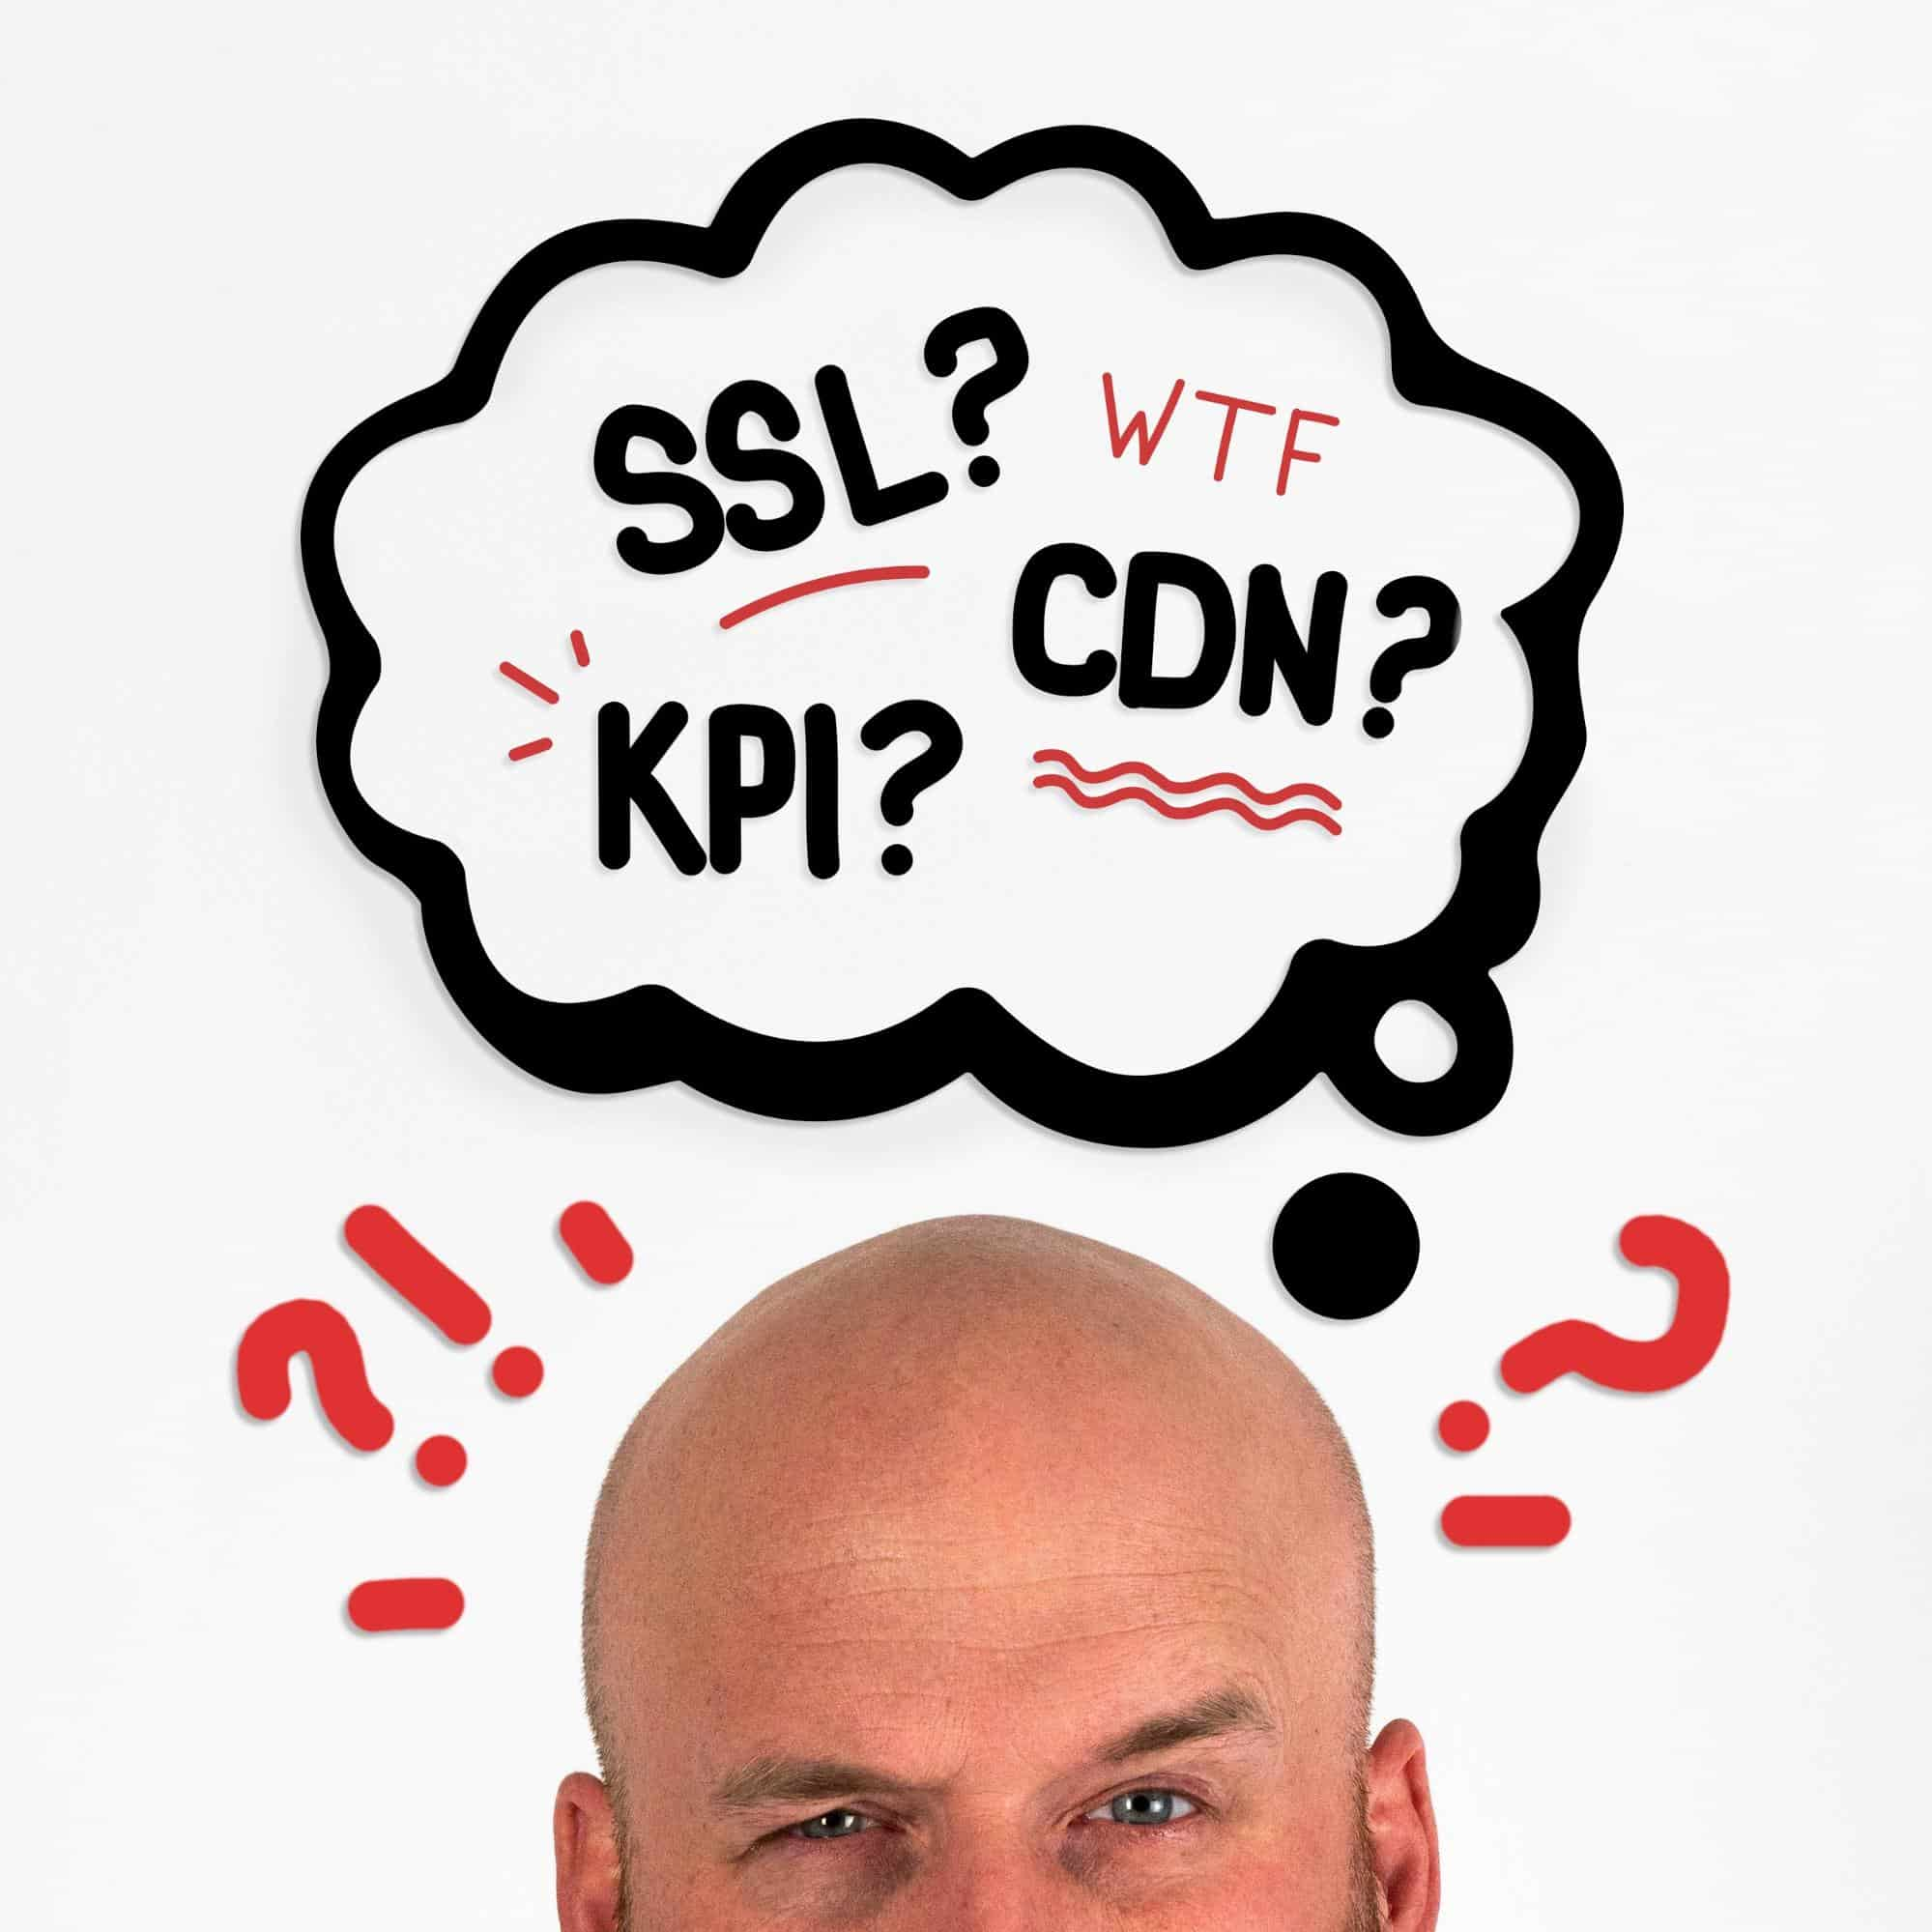 Frank thinking about ssl's, kpi and cdns in relation to website seo ranking